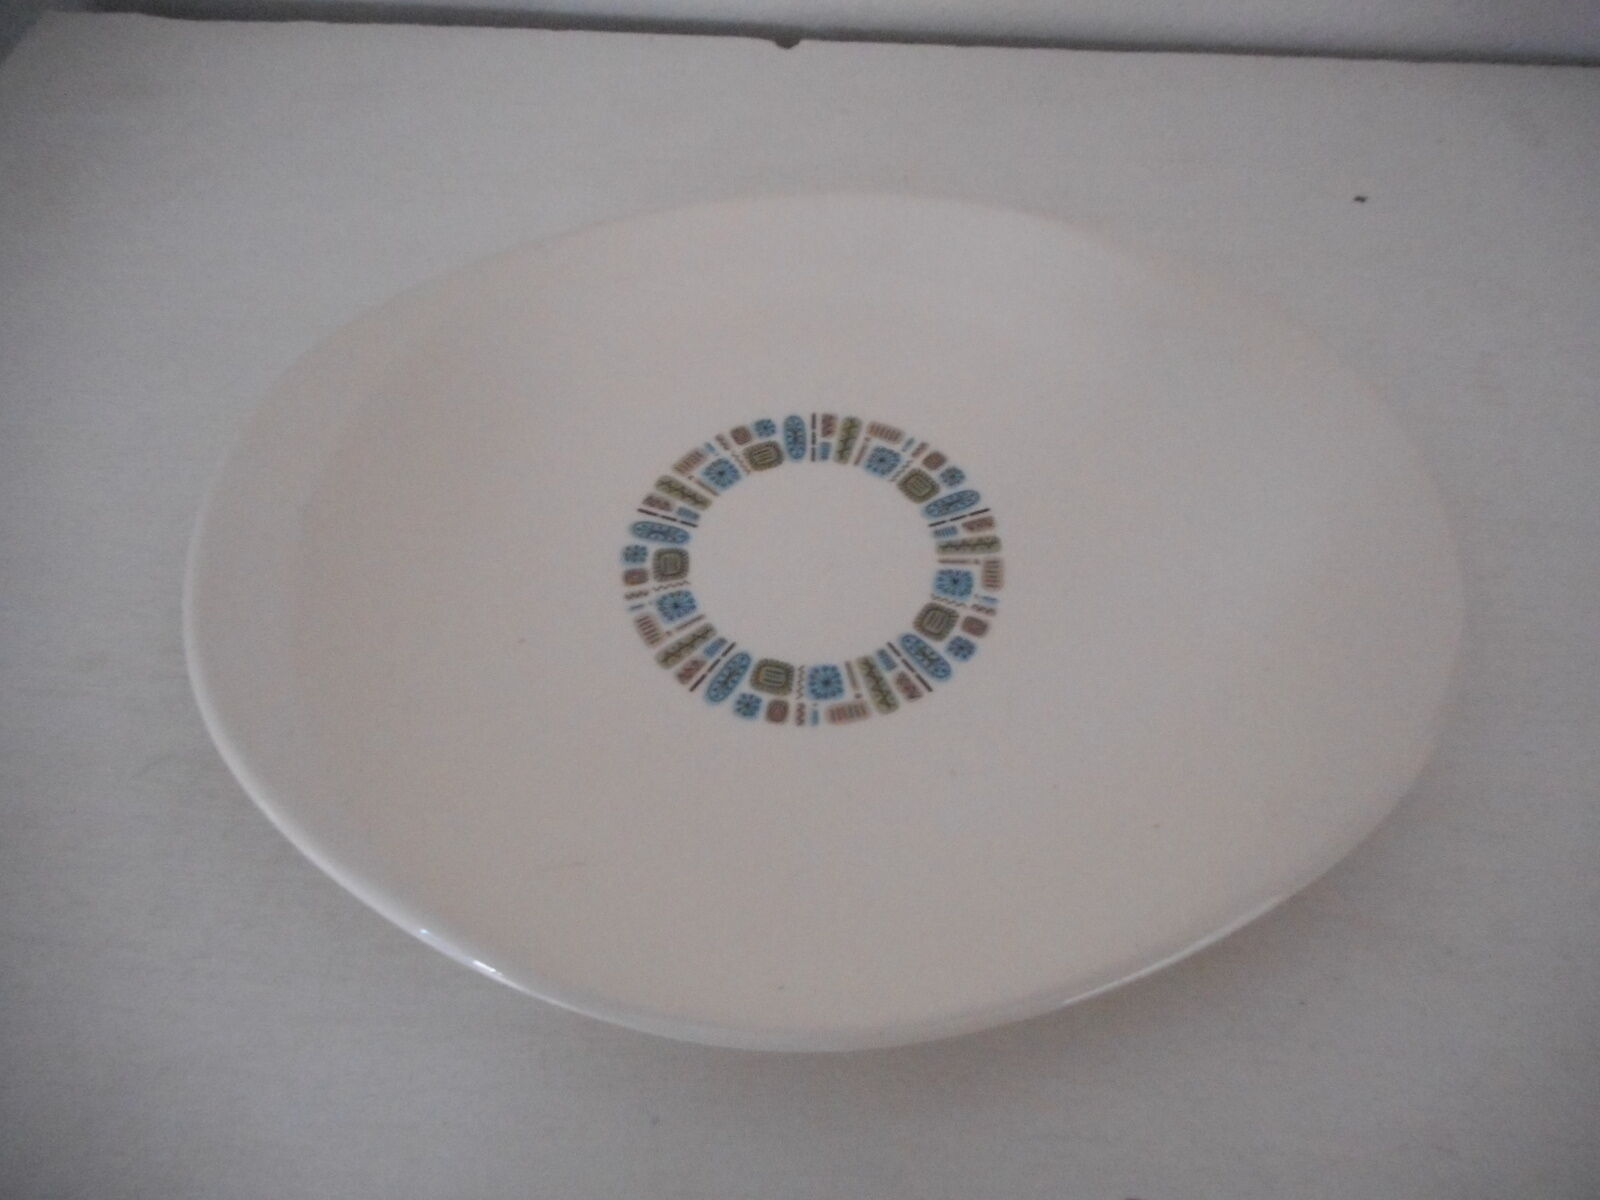 Vintage Canonsburg Temporama Oval Serving Platter Mid Century Modern Atomic